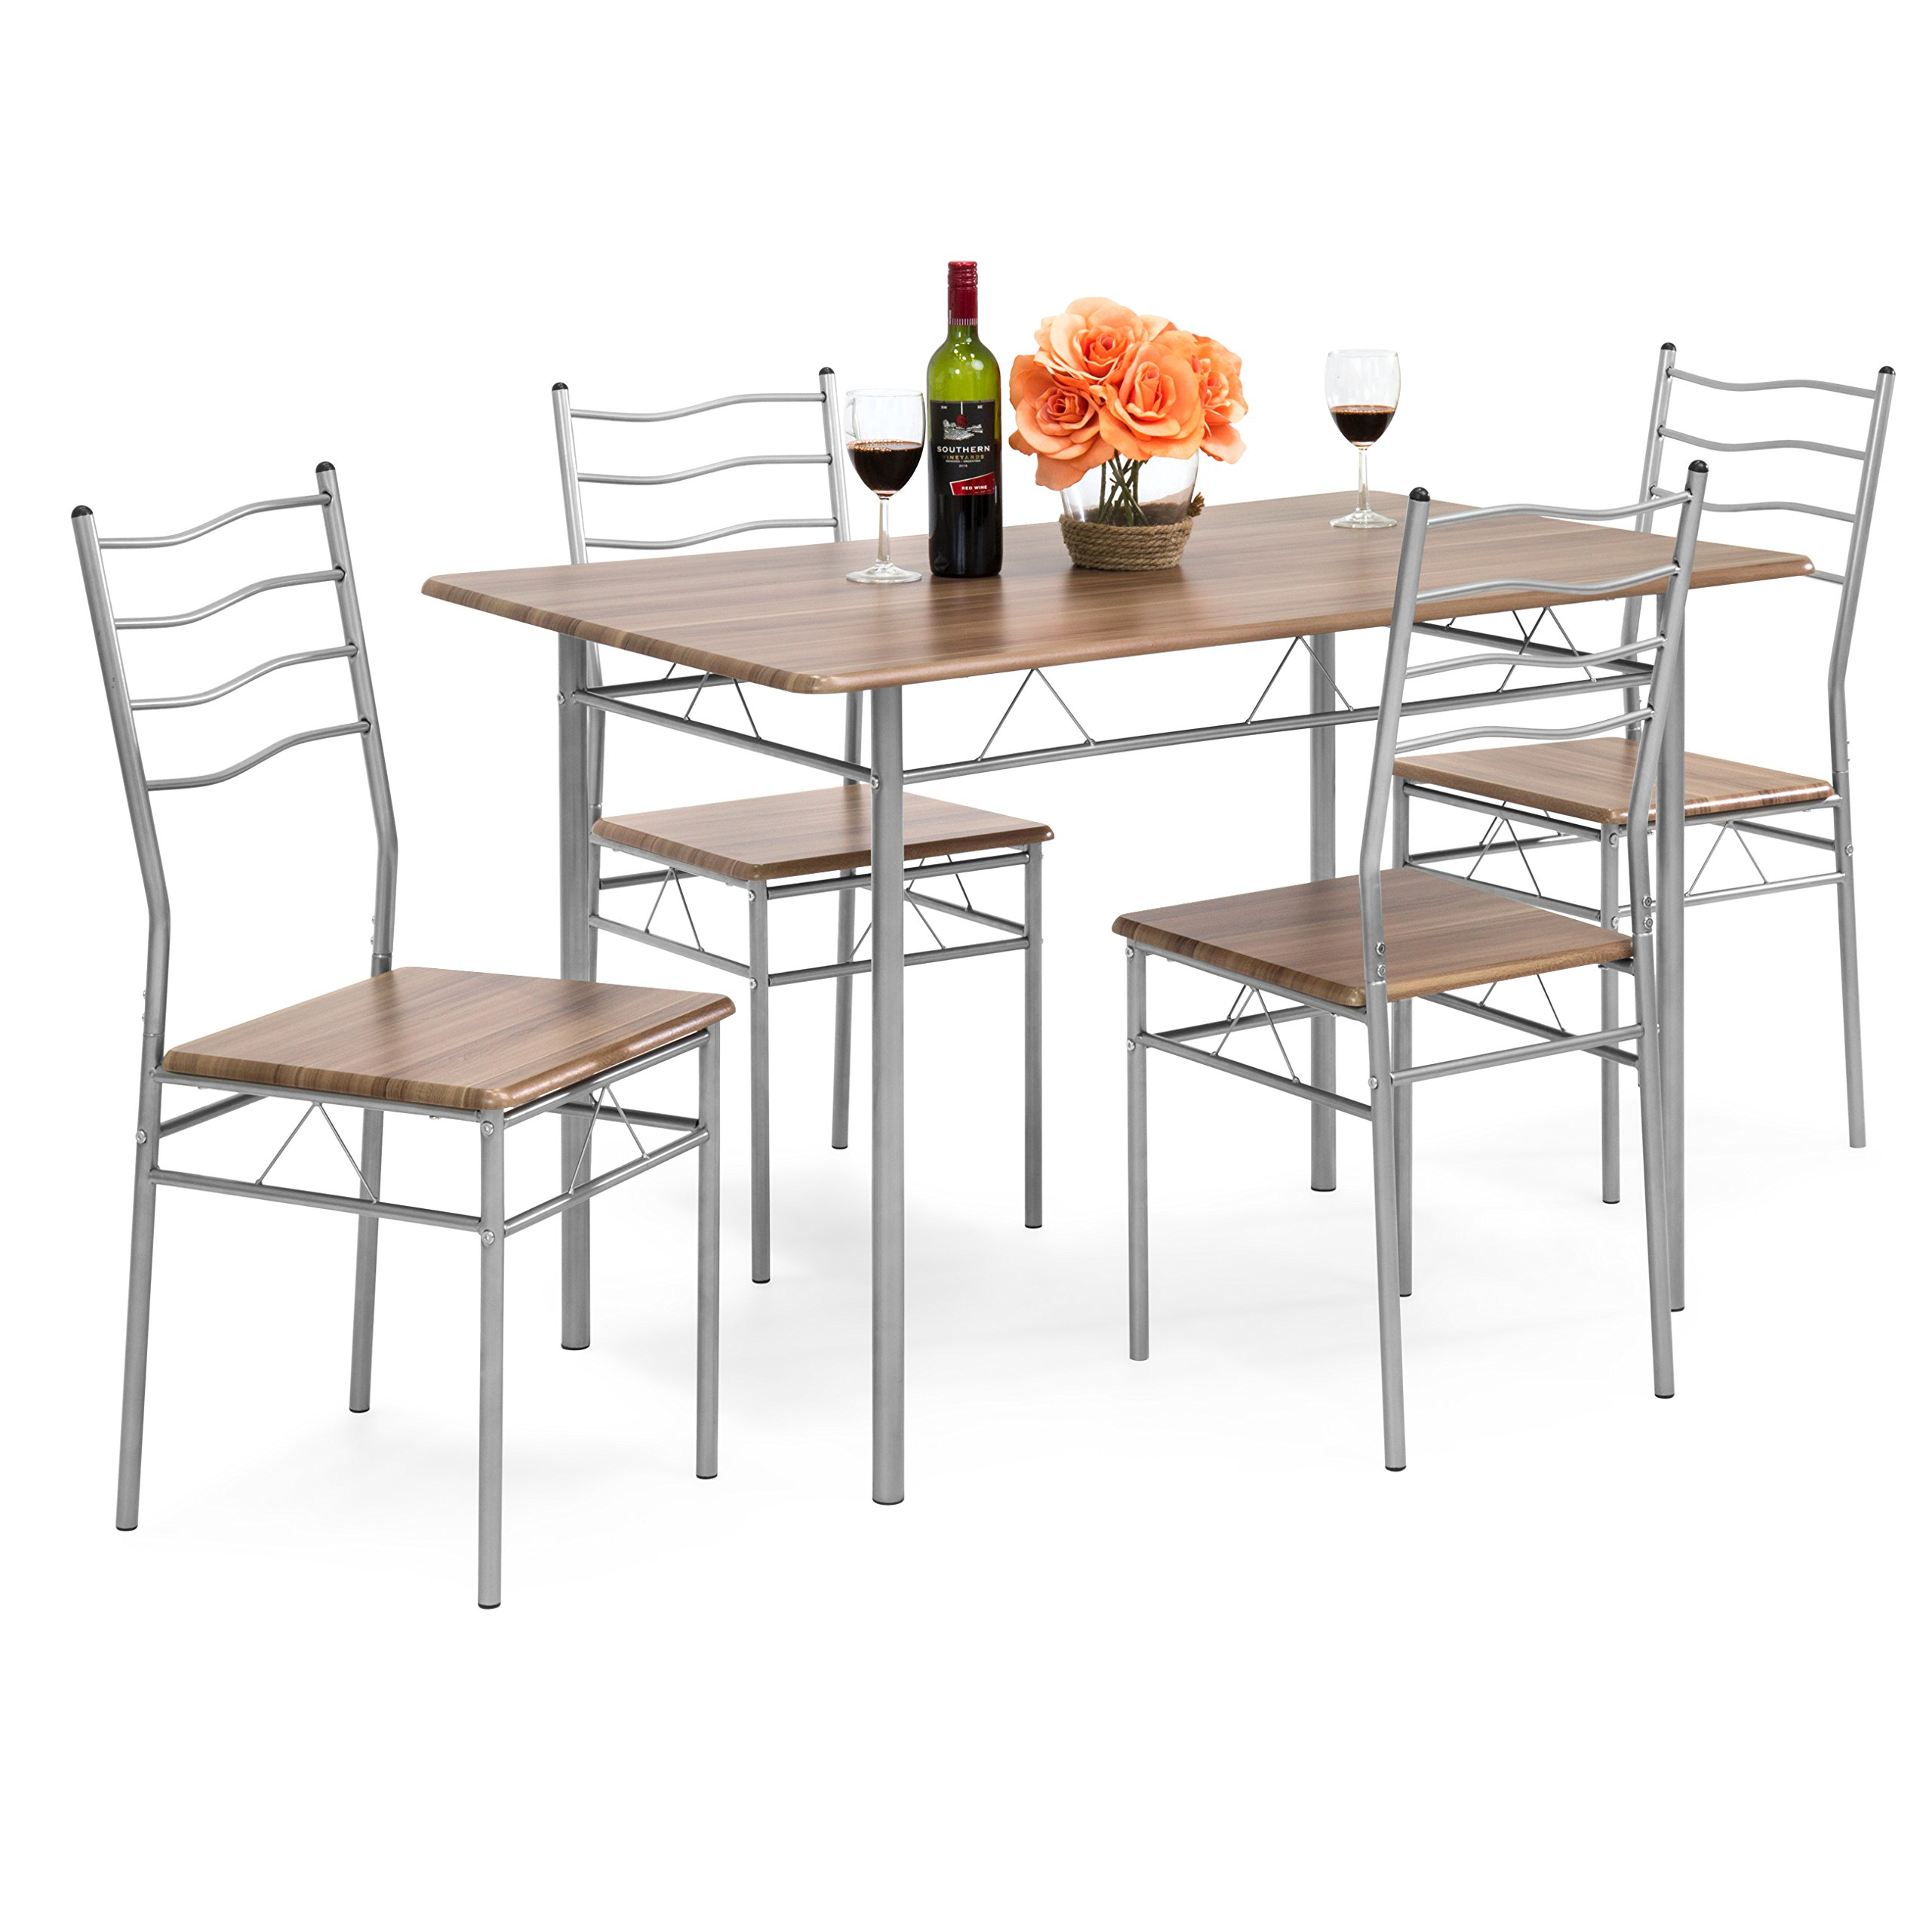 Best Choice Products 5-Piece 4-Foot Modern Wooden Kitchen Table Dining Set w/Metal Legs, 4 Chairs, Brown/Silver by Best Choice Products (Image #1)